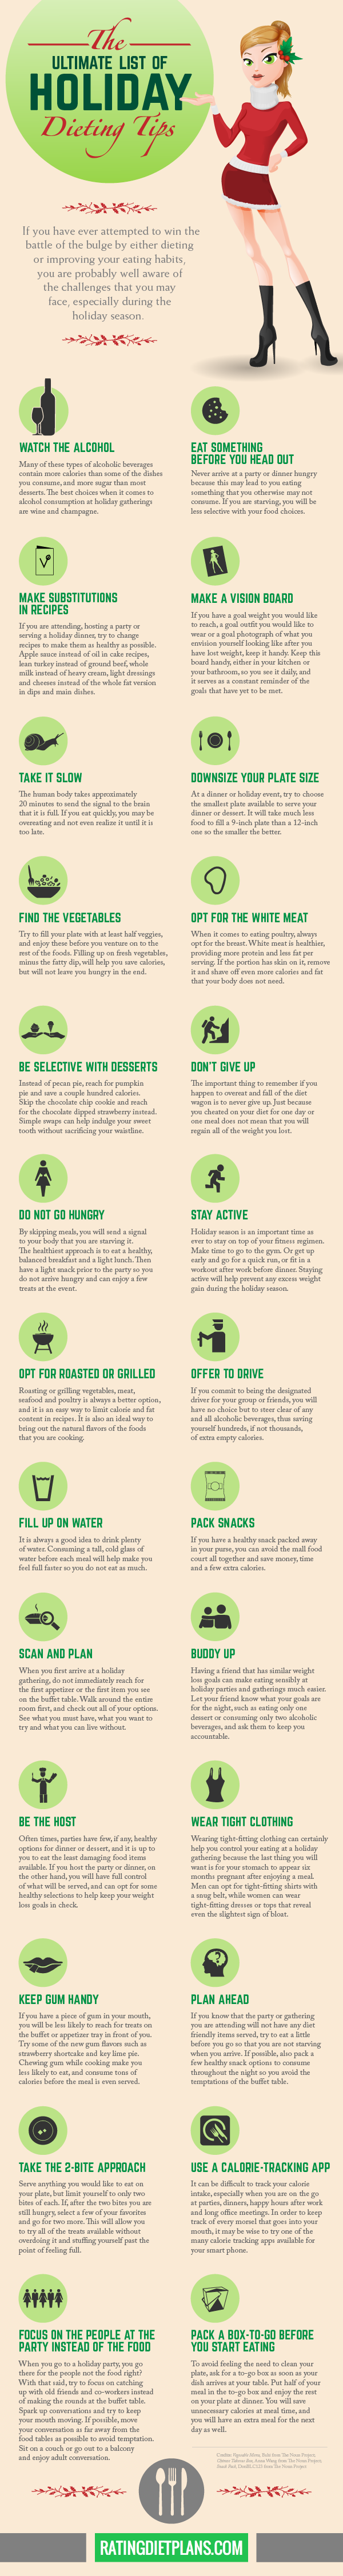 Diet Tips for Holidays-Infographic